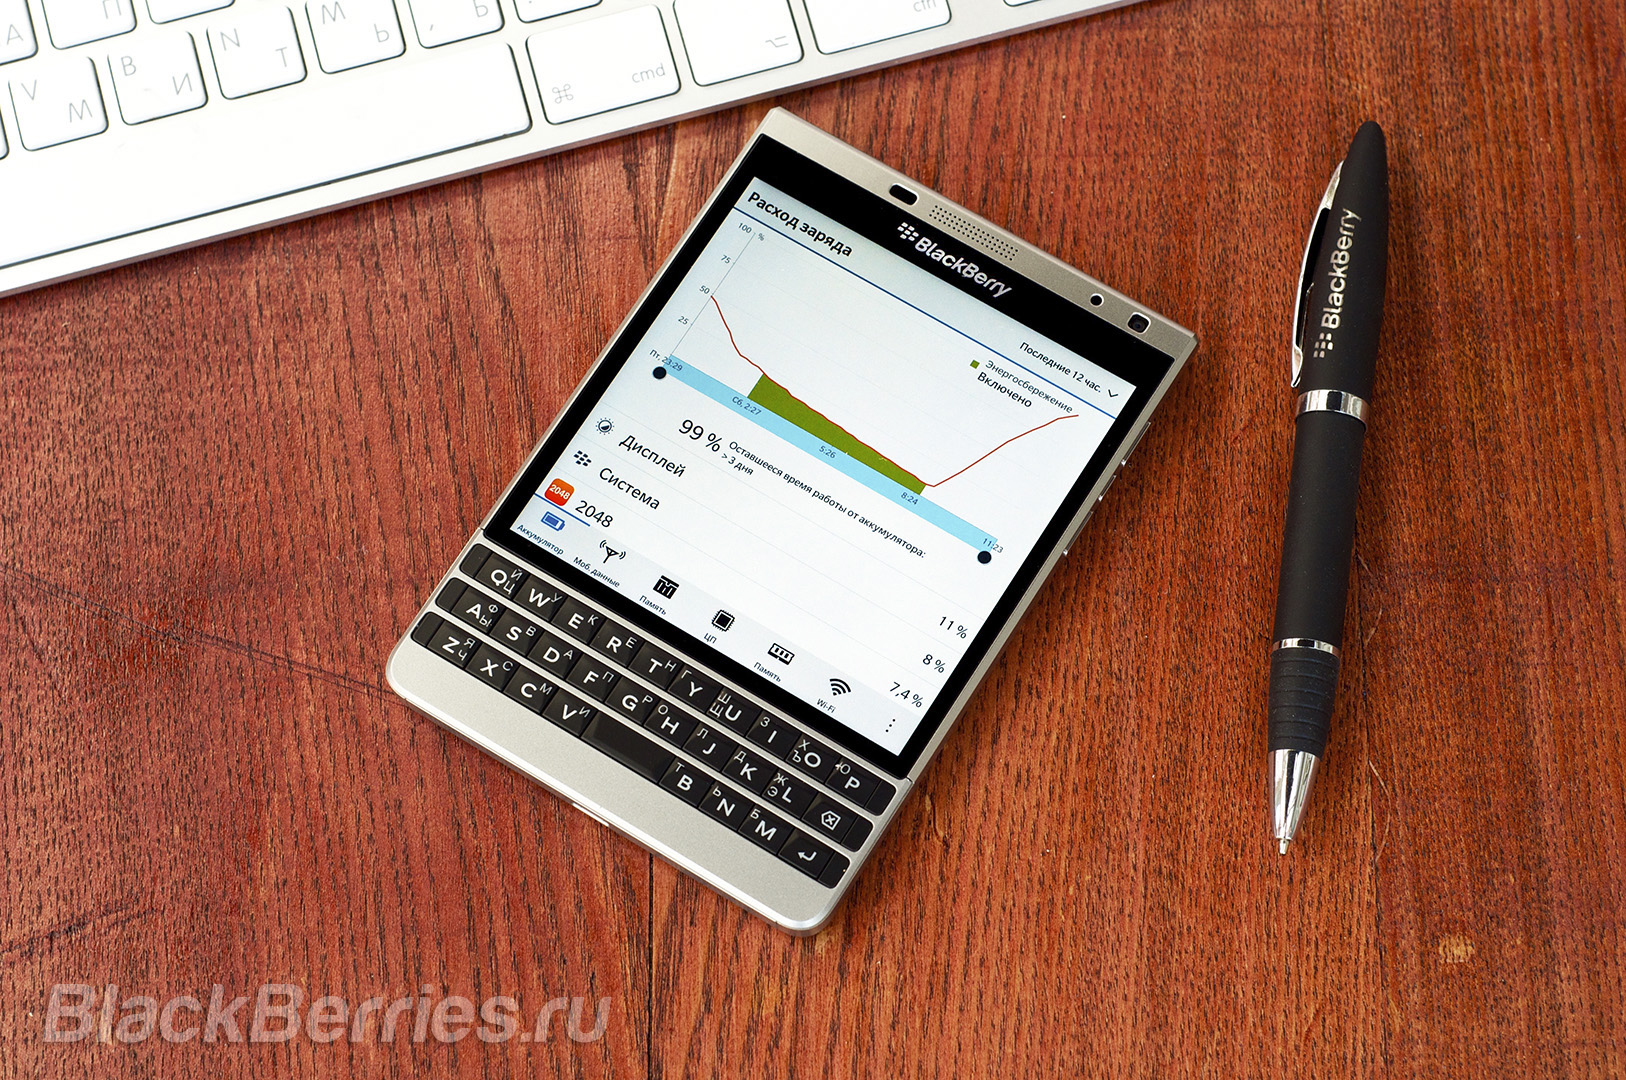 BlackBerry-Passport-Silver-Battery-06